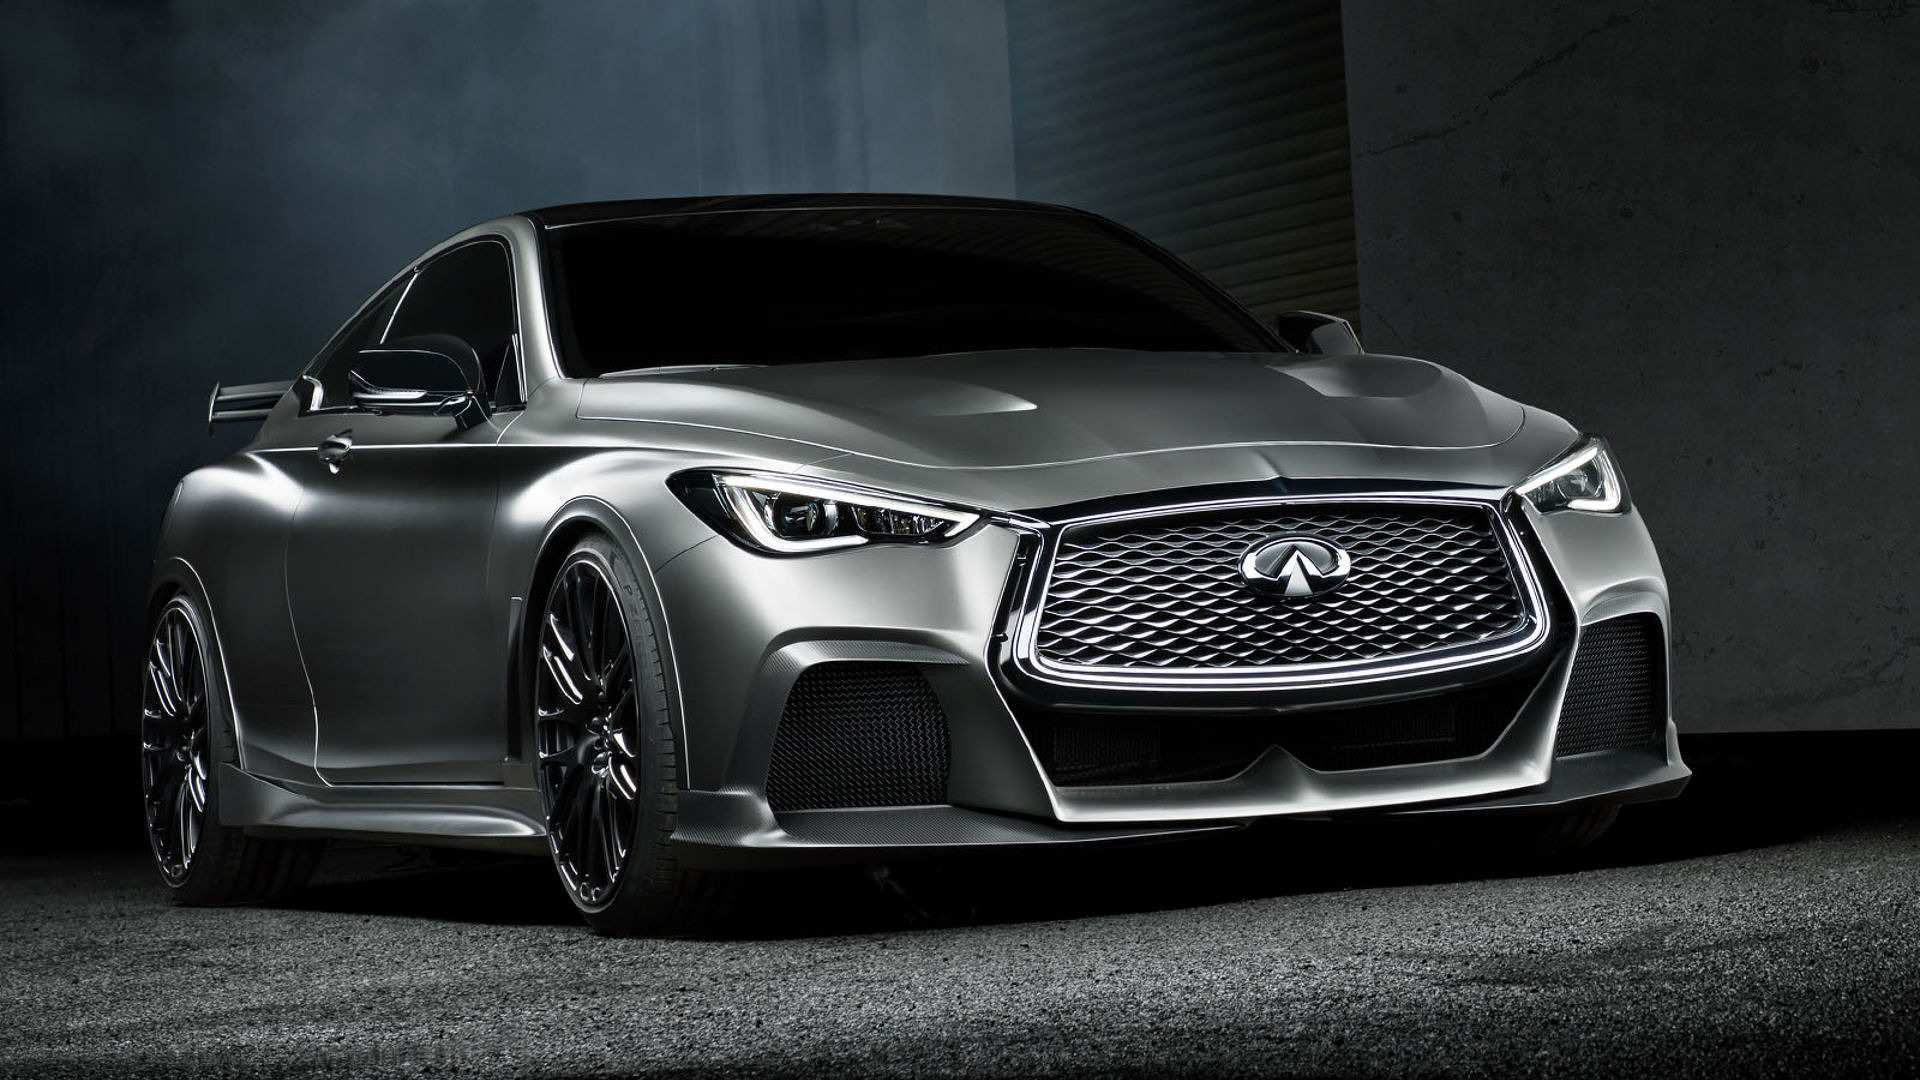 26 The 2020 Infiniti Q60 Review And Release Date